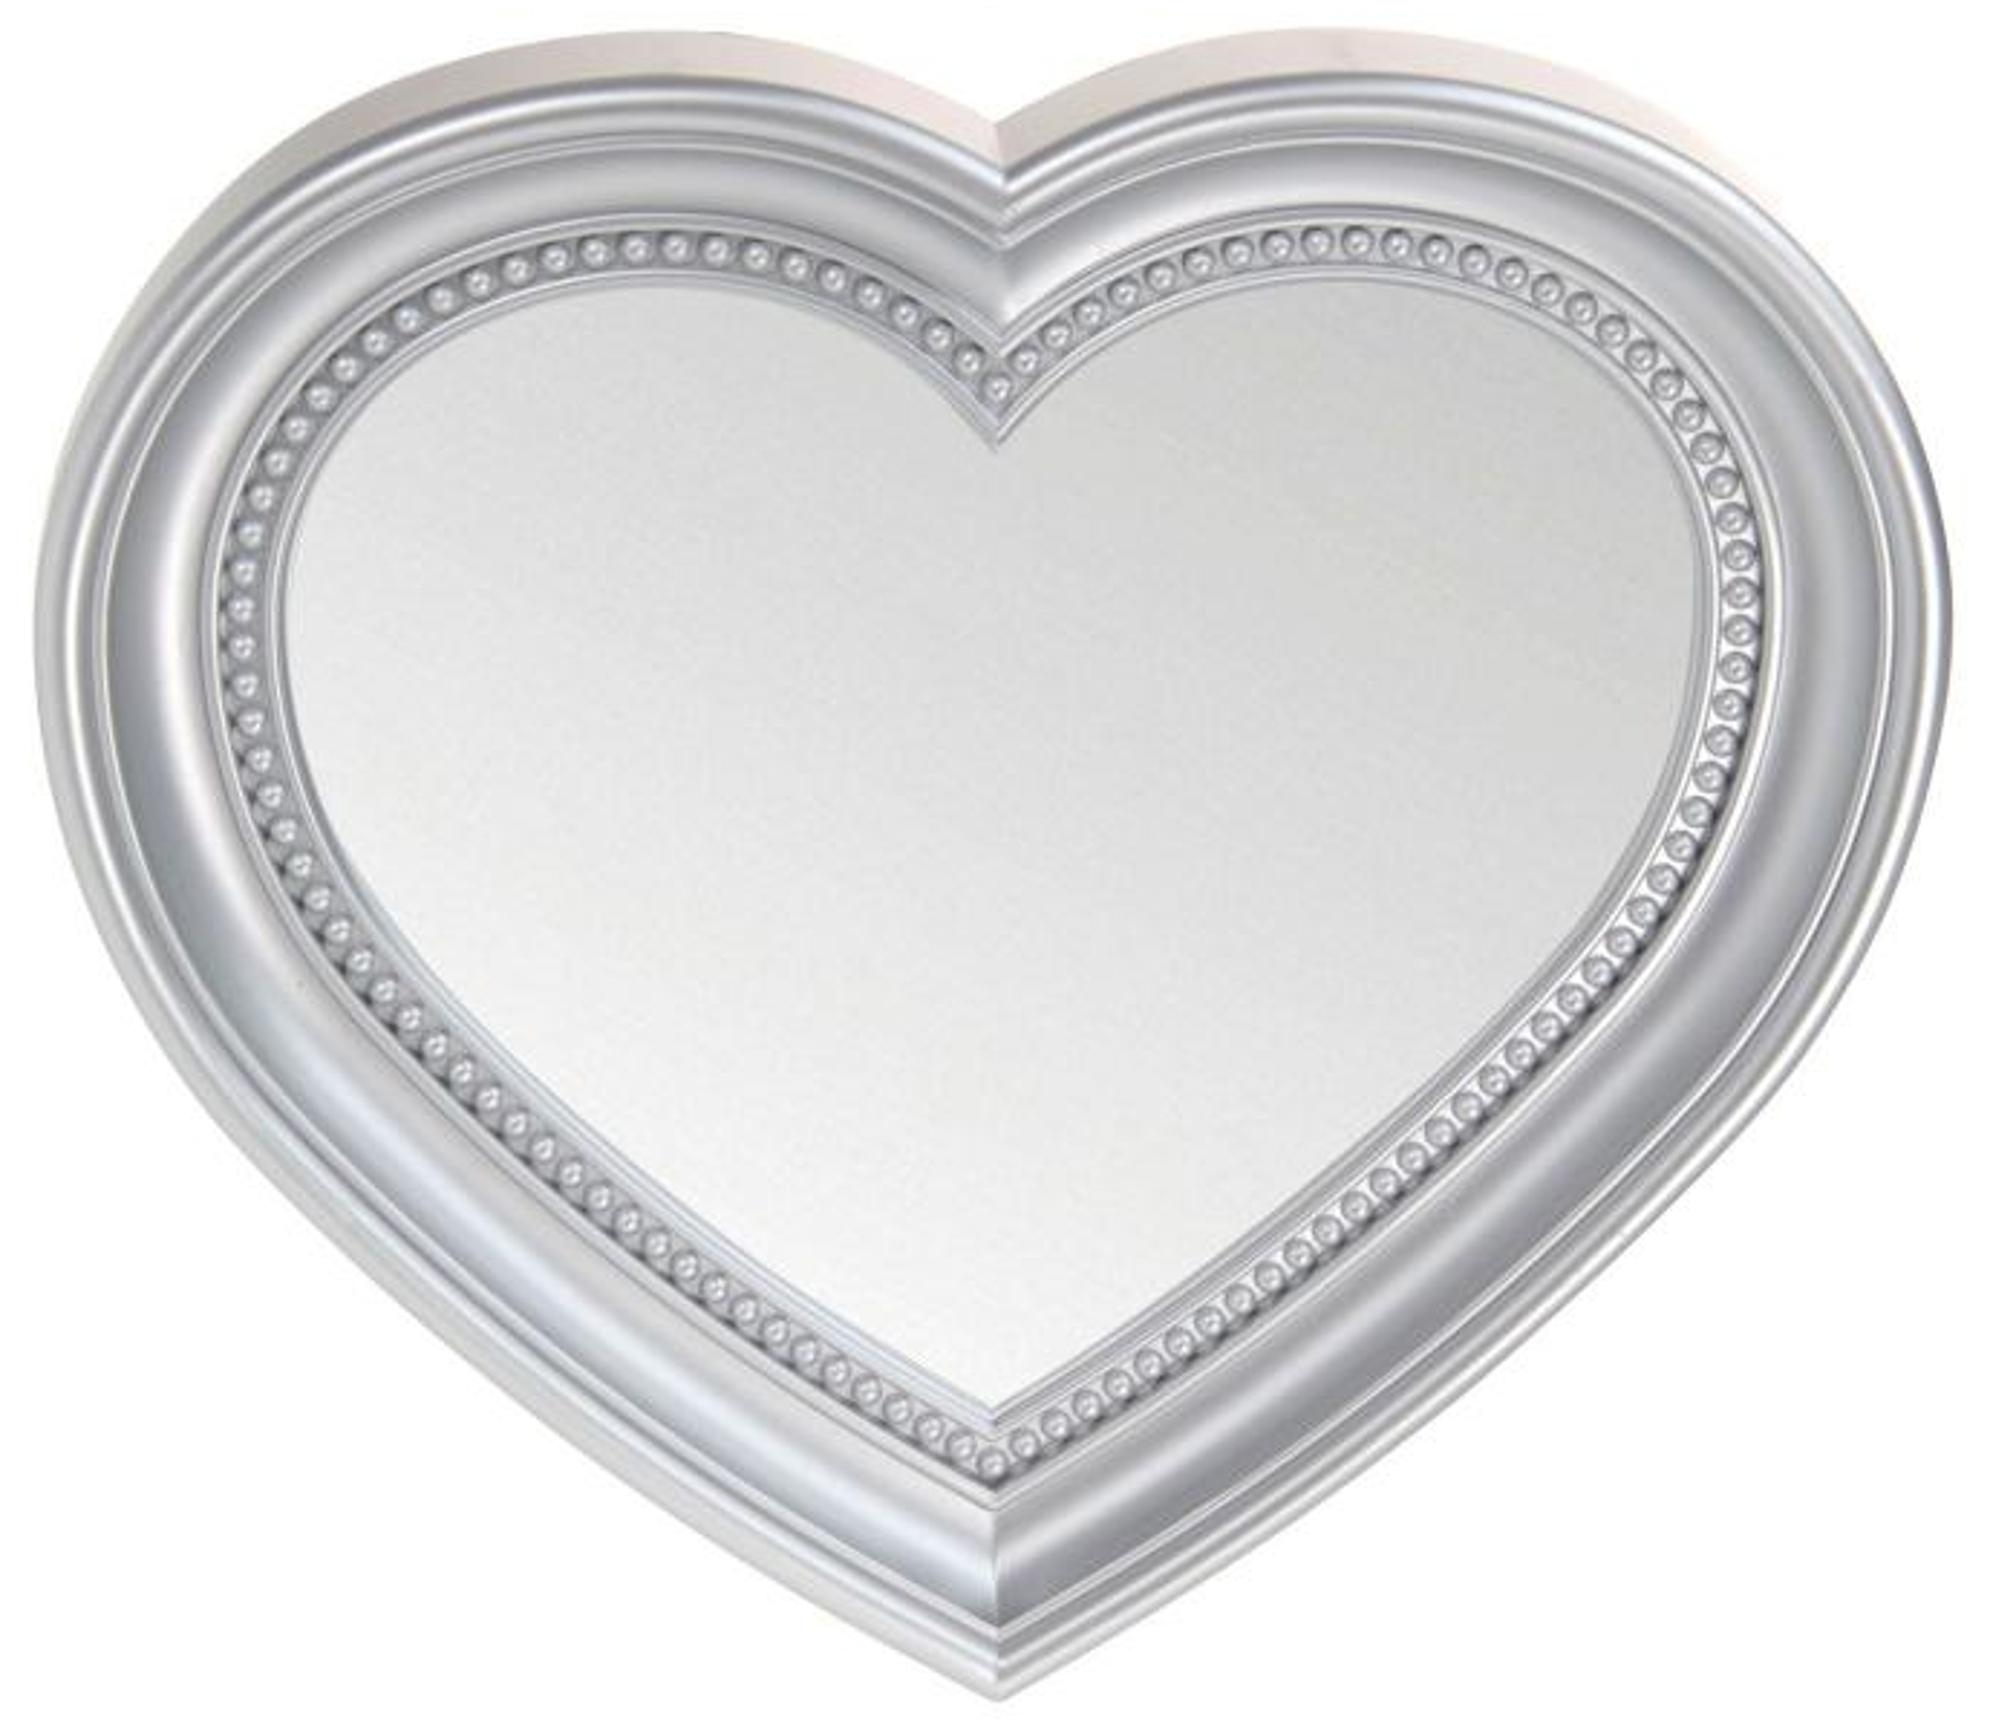 Heart Shaped Wall Hanging Mirror, Silver 45Cm | Blendboutique Intended For Heart Shaped Mirror For Wall (Image 5 of 20)